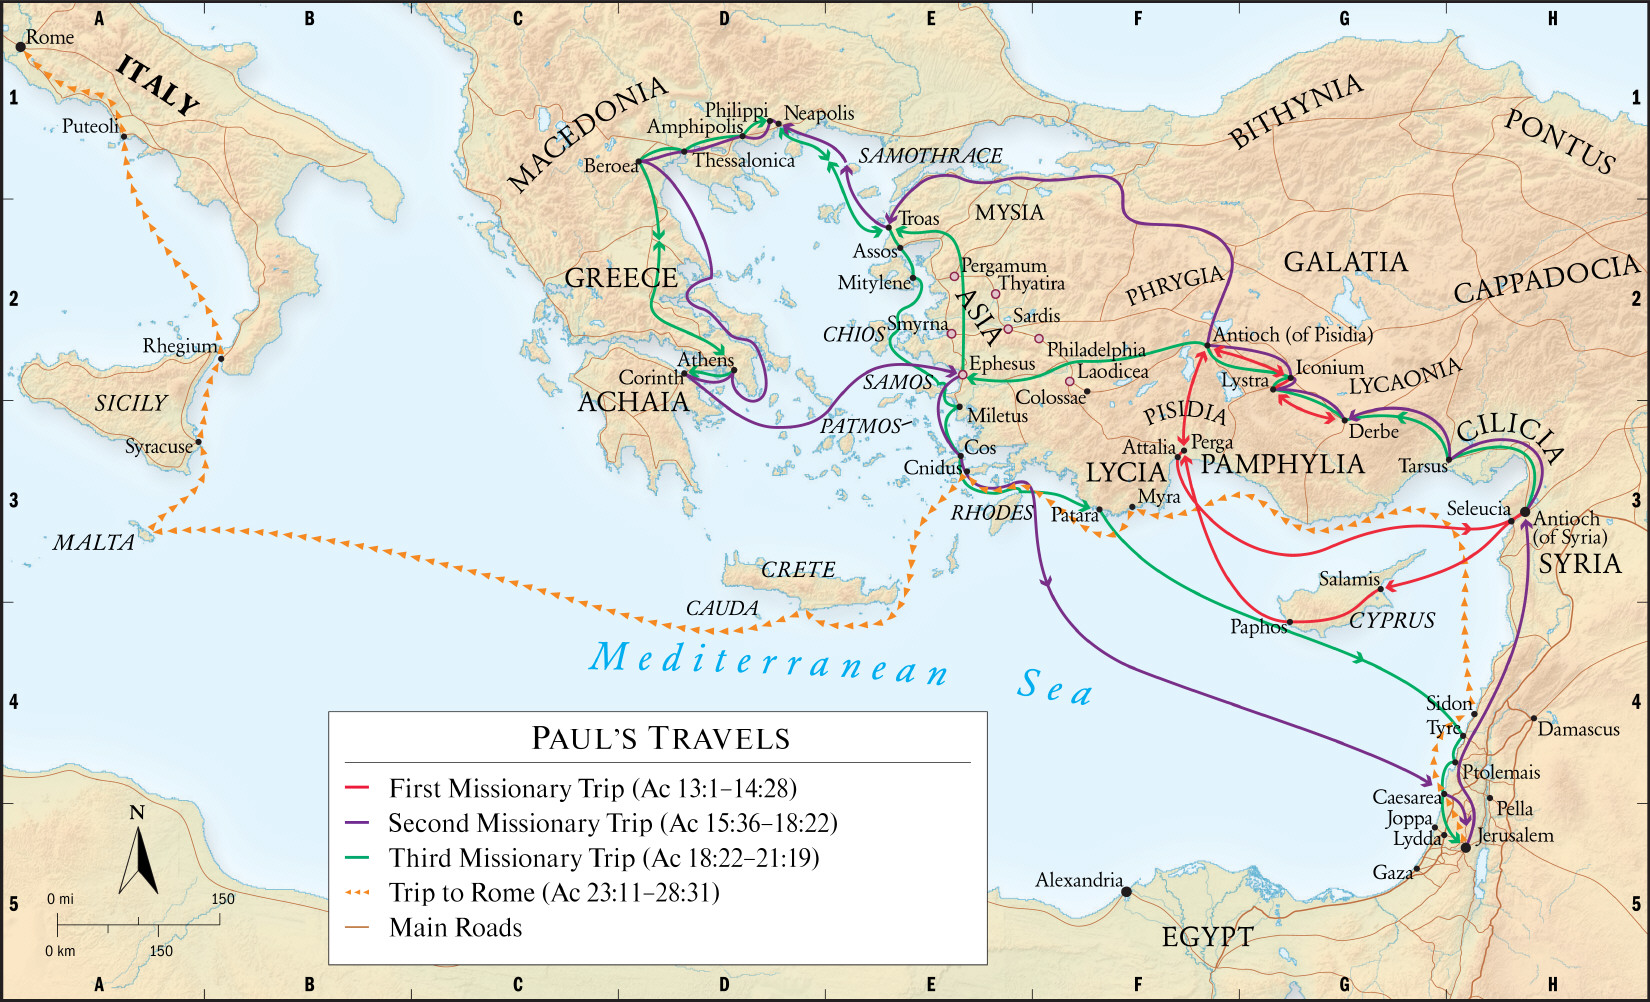 THE APOSTLE PAUL His Missionary Travels – Christian